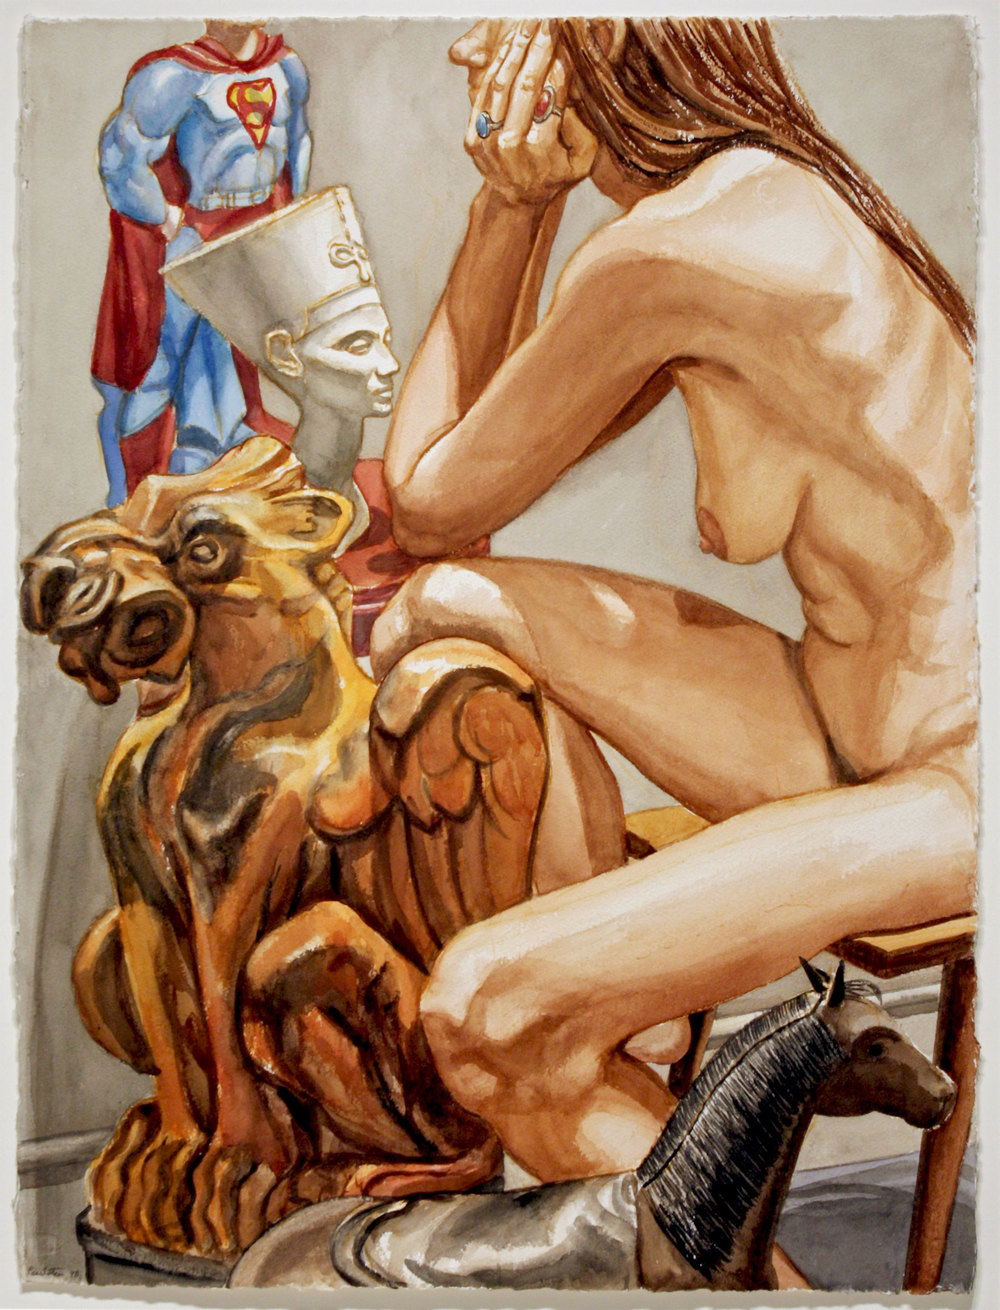 Study with Model for Superman, Nefertiti and Gargoyle, 1998 Watercolor on paper 30 1/8 x 22 5/8 inches